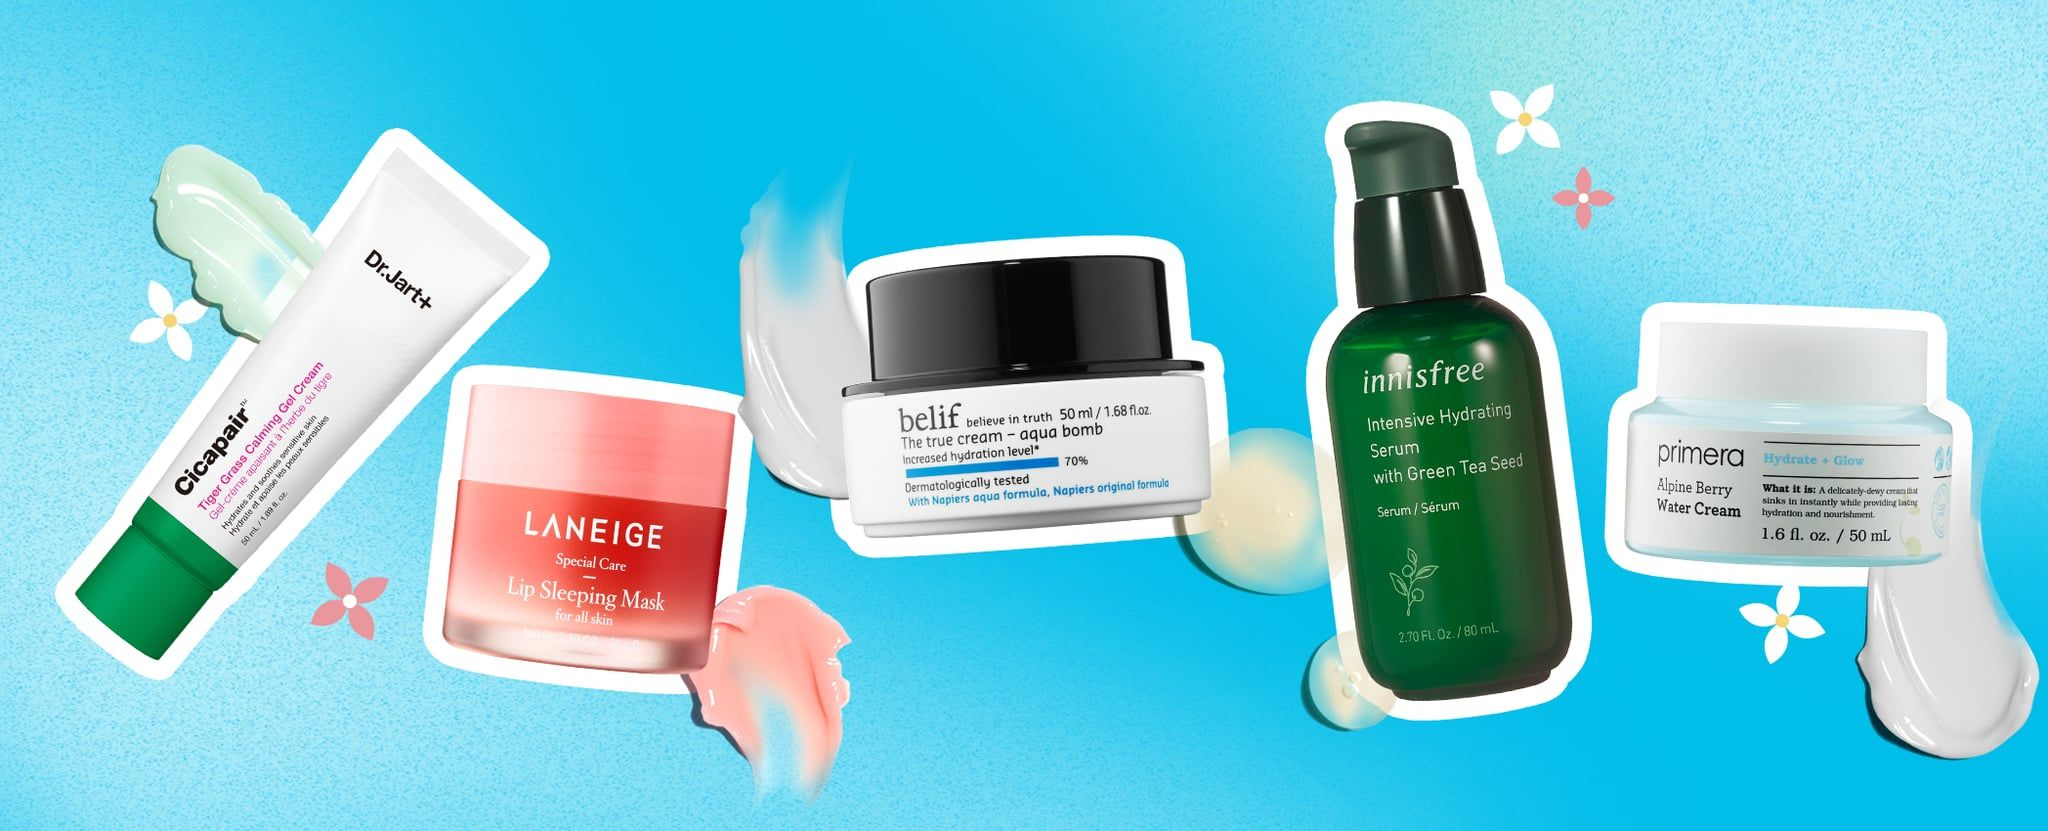 5 kbeauty skincare products so good sephora cant keep